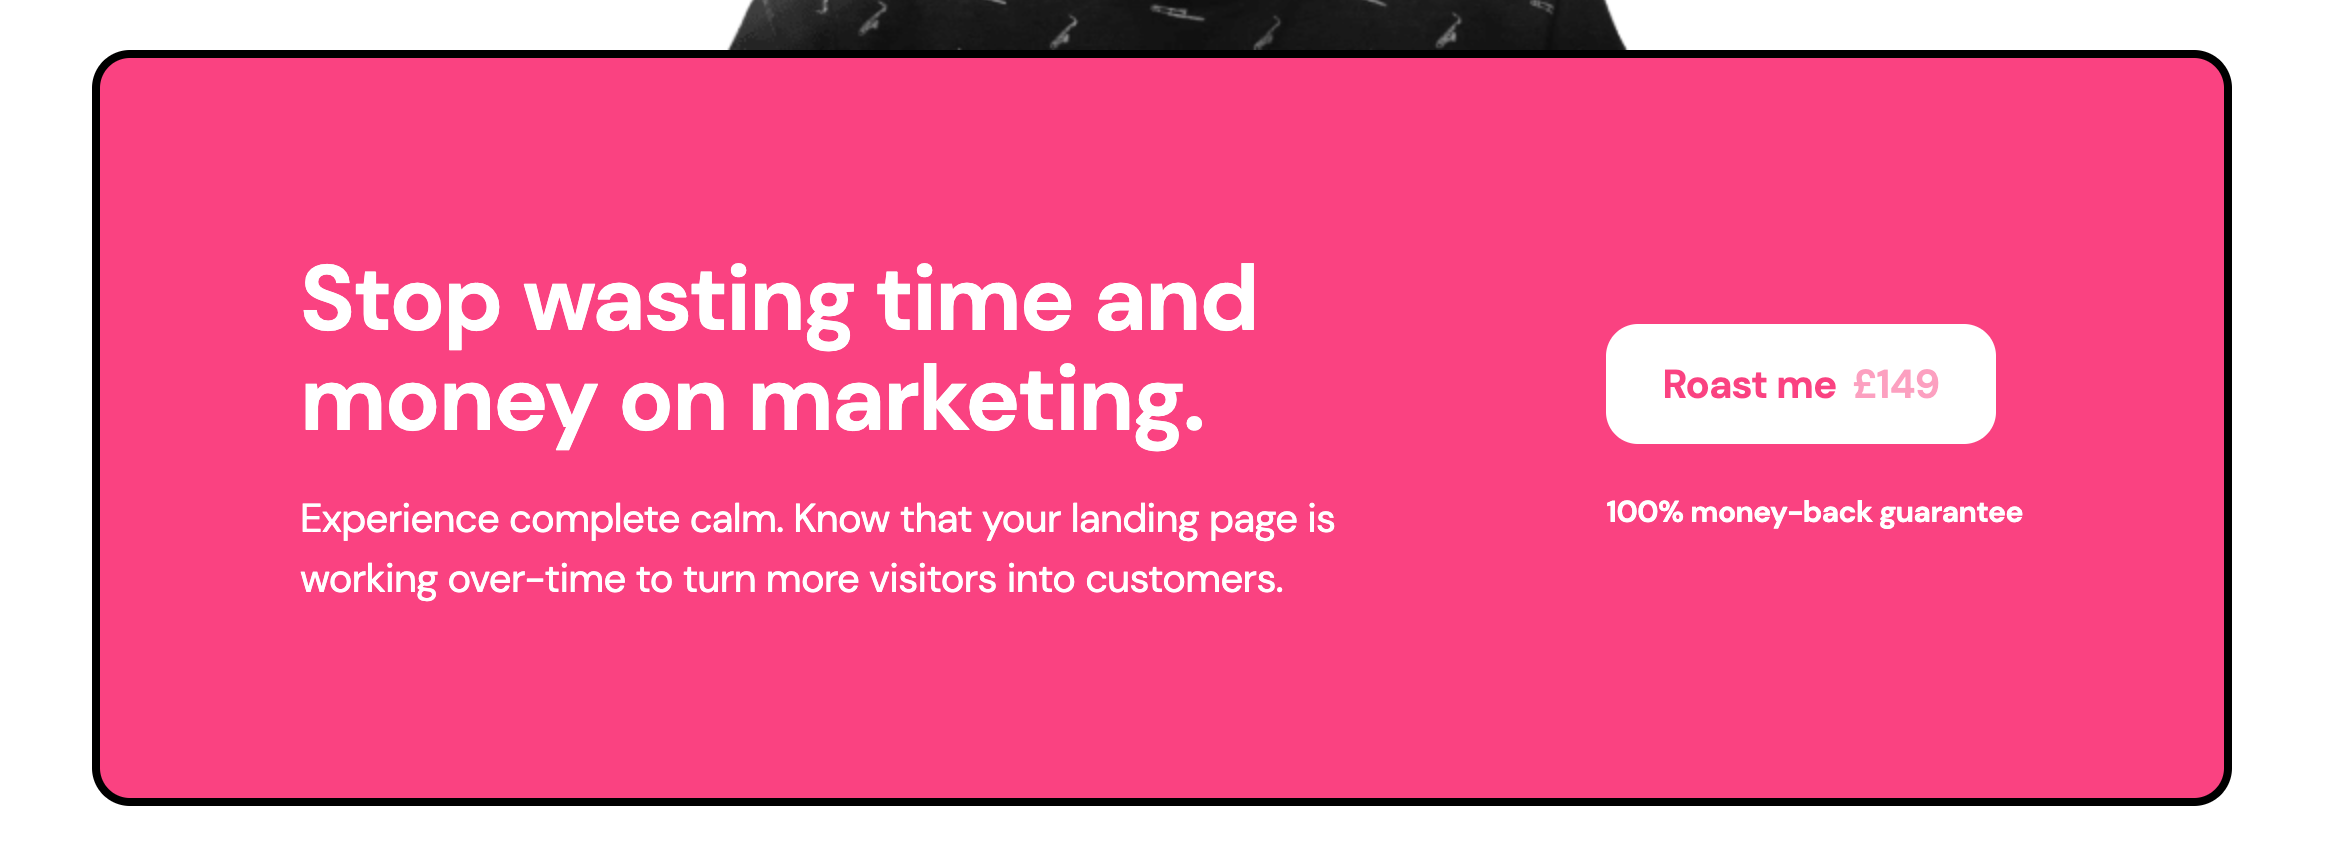 roast my landing page home for landing page optimization